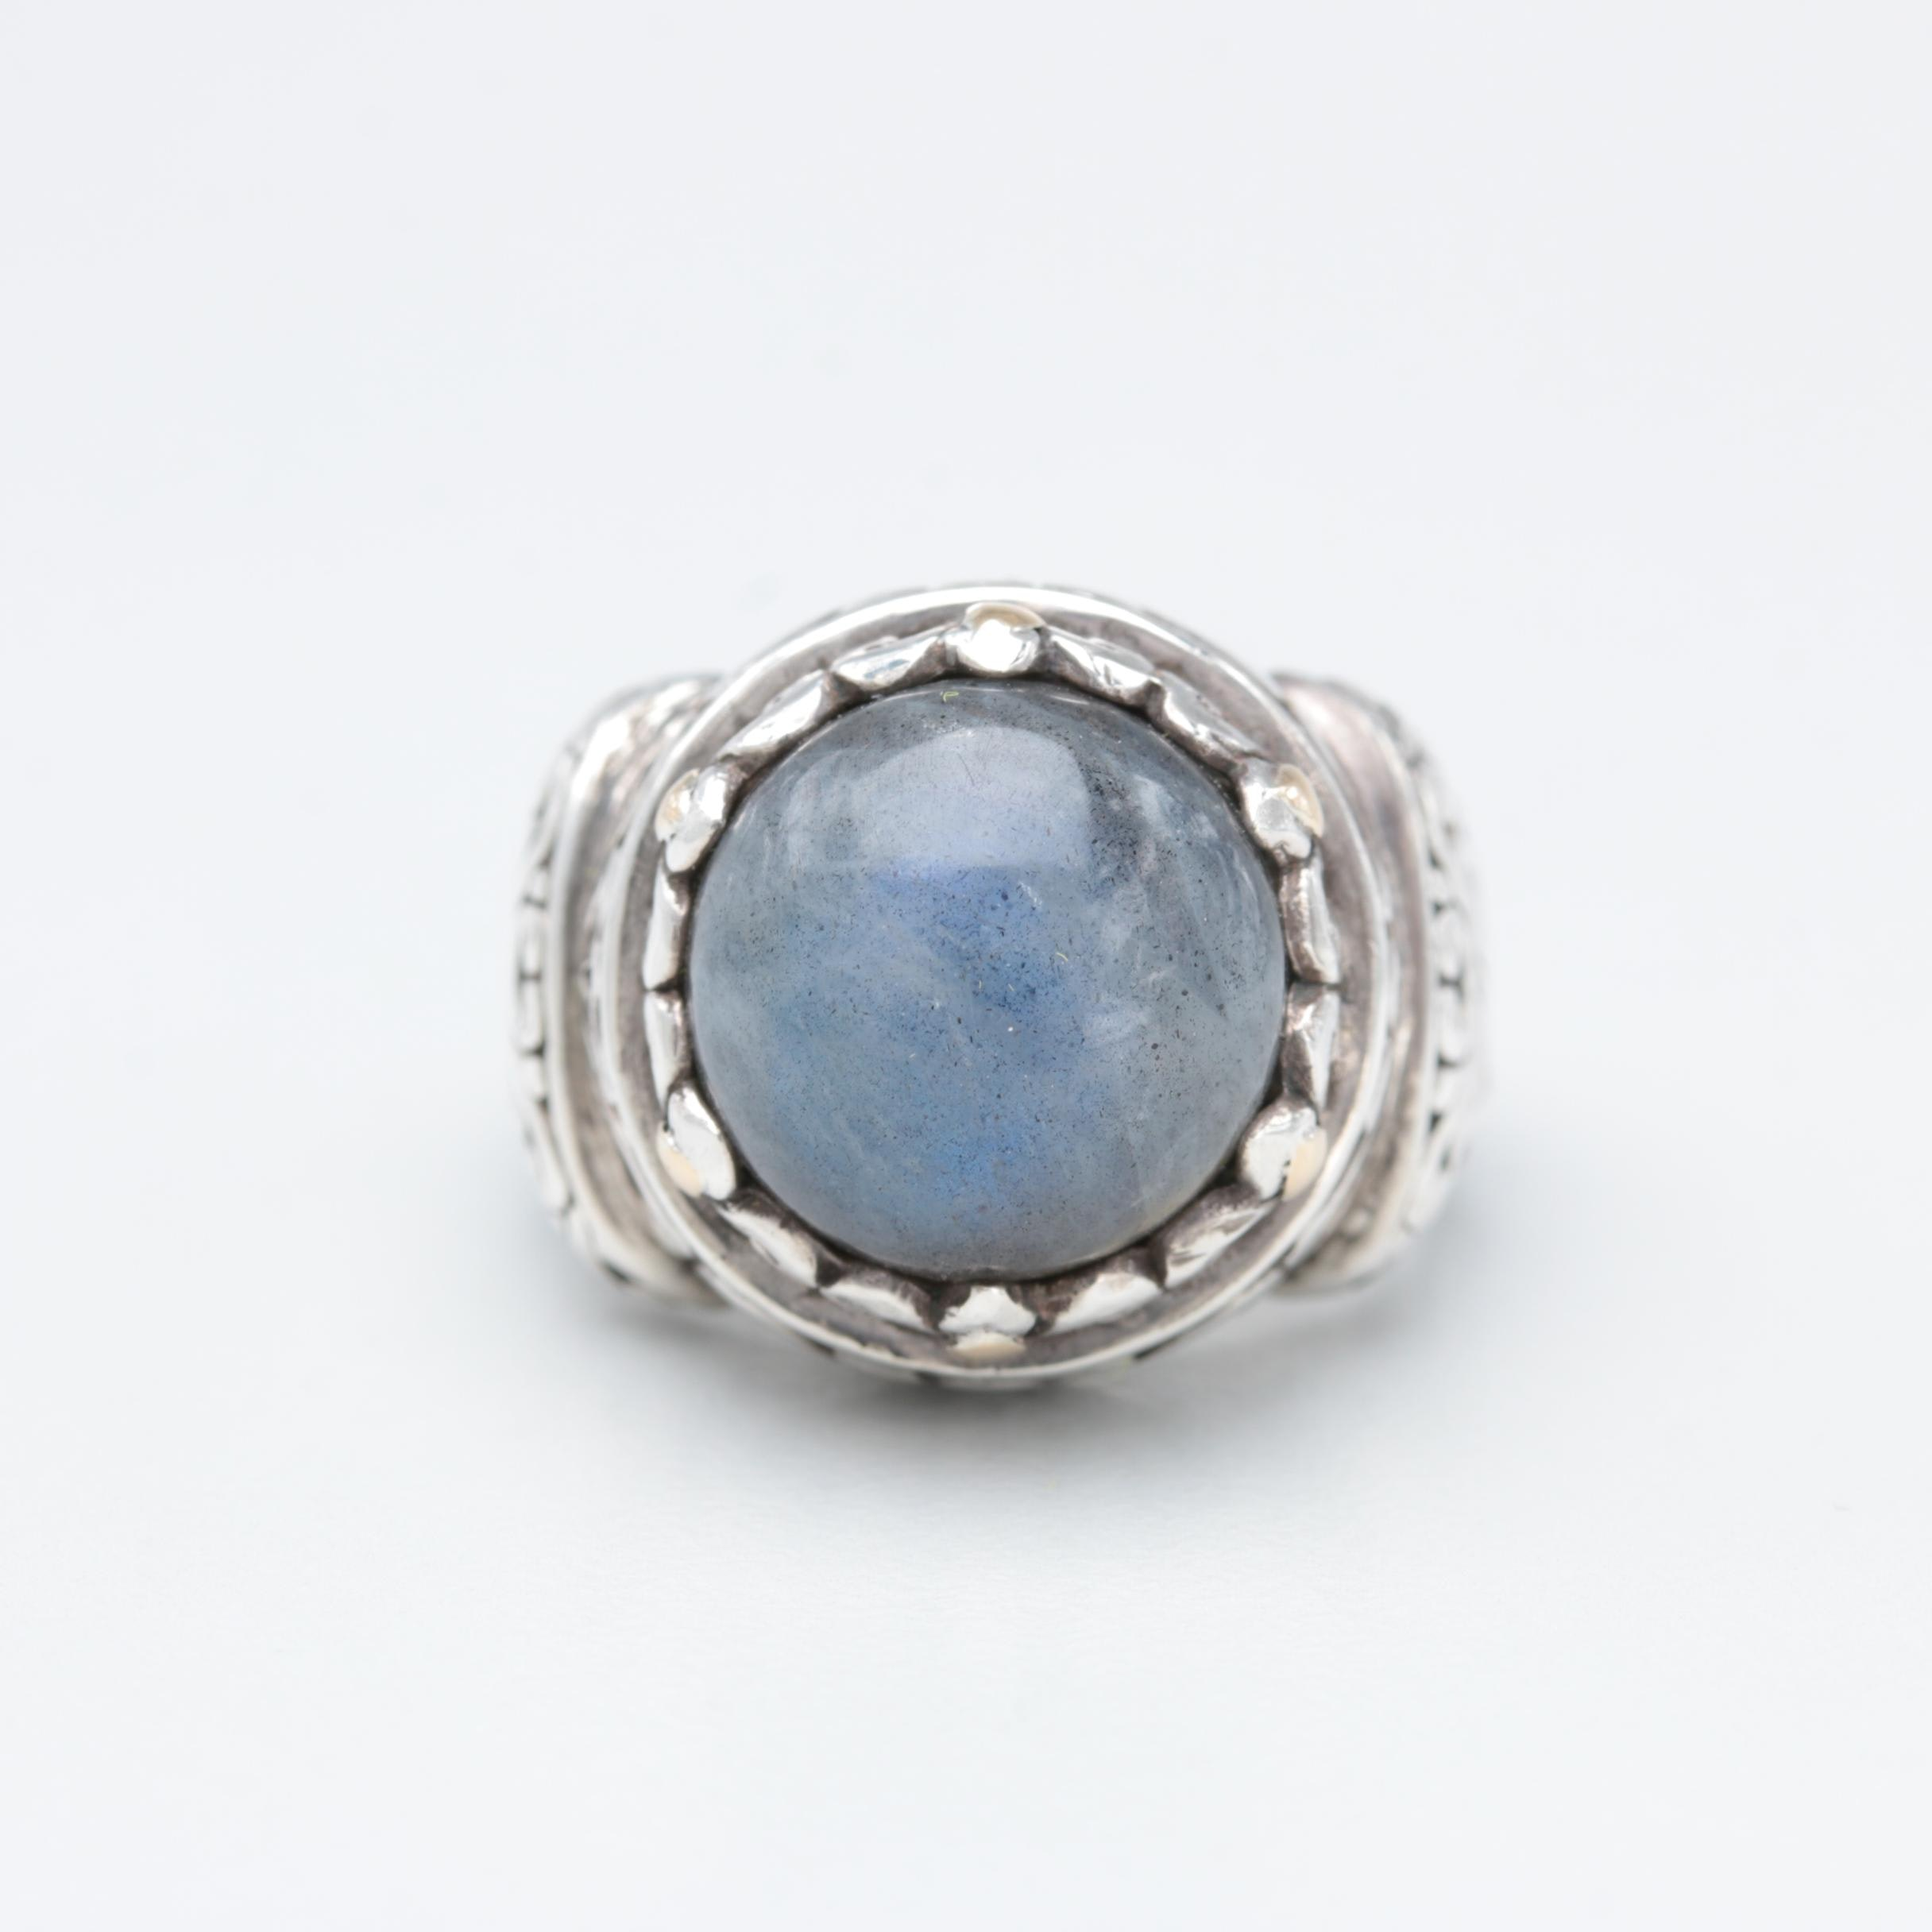 Robert Manse Sterling Silver Labradorite Ring with 18K Accents